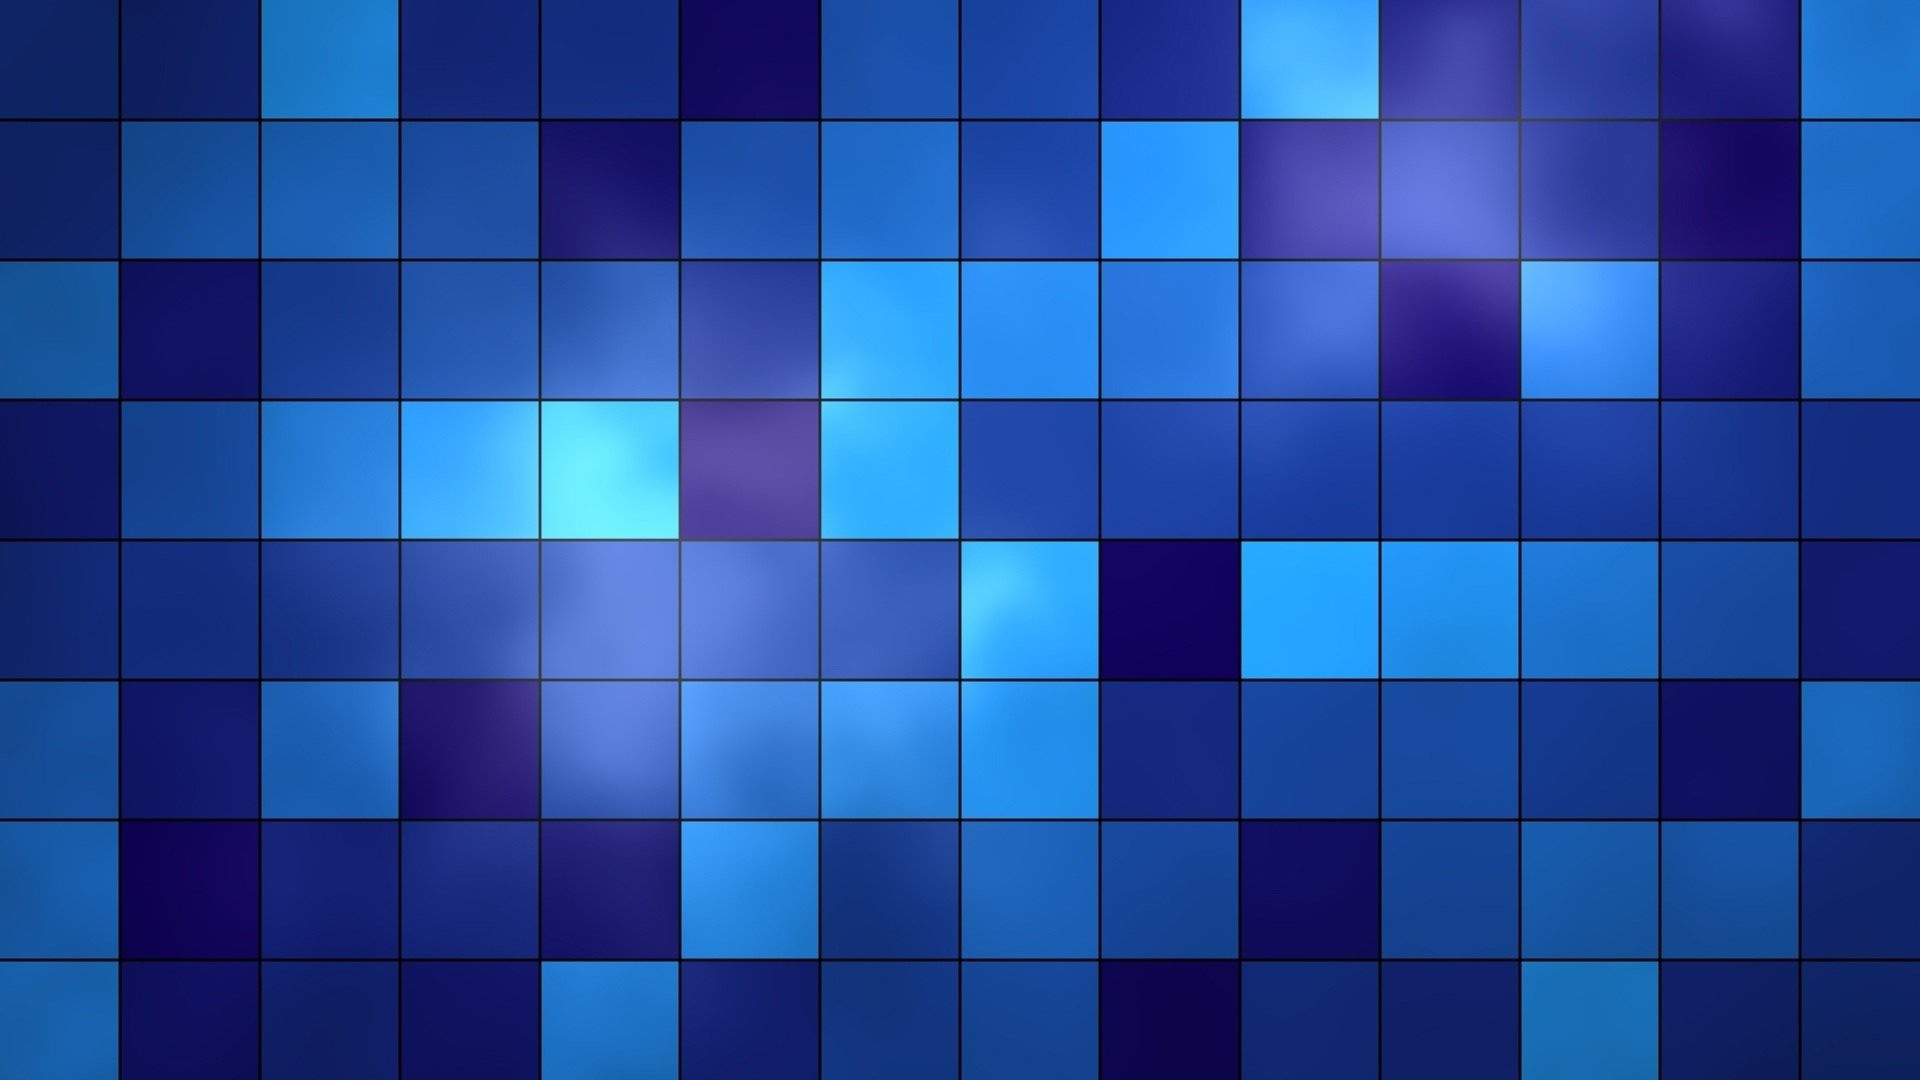 cool background designs 183�� download free stunning full hd